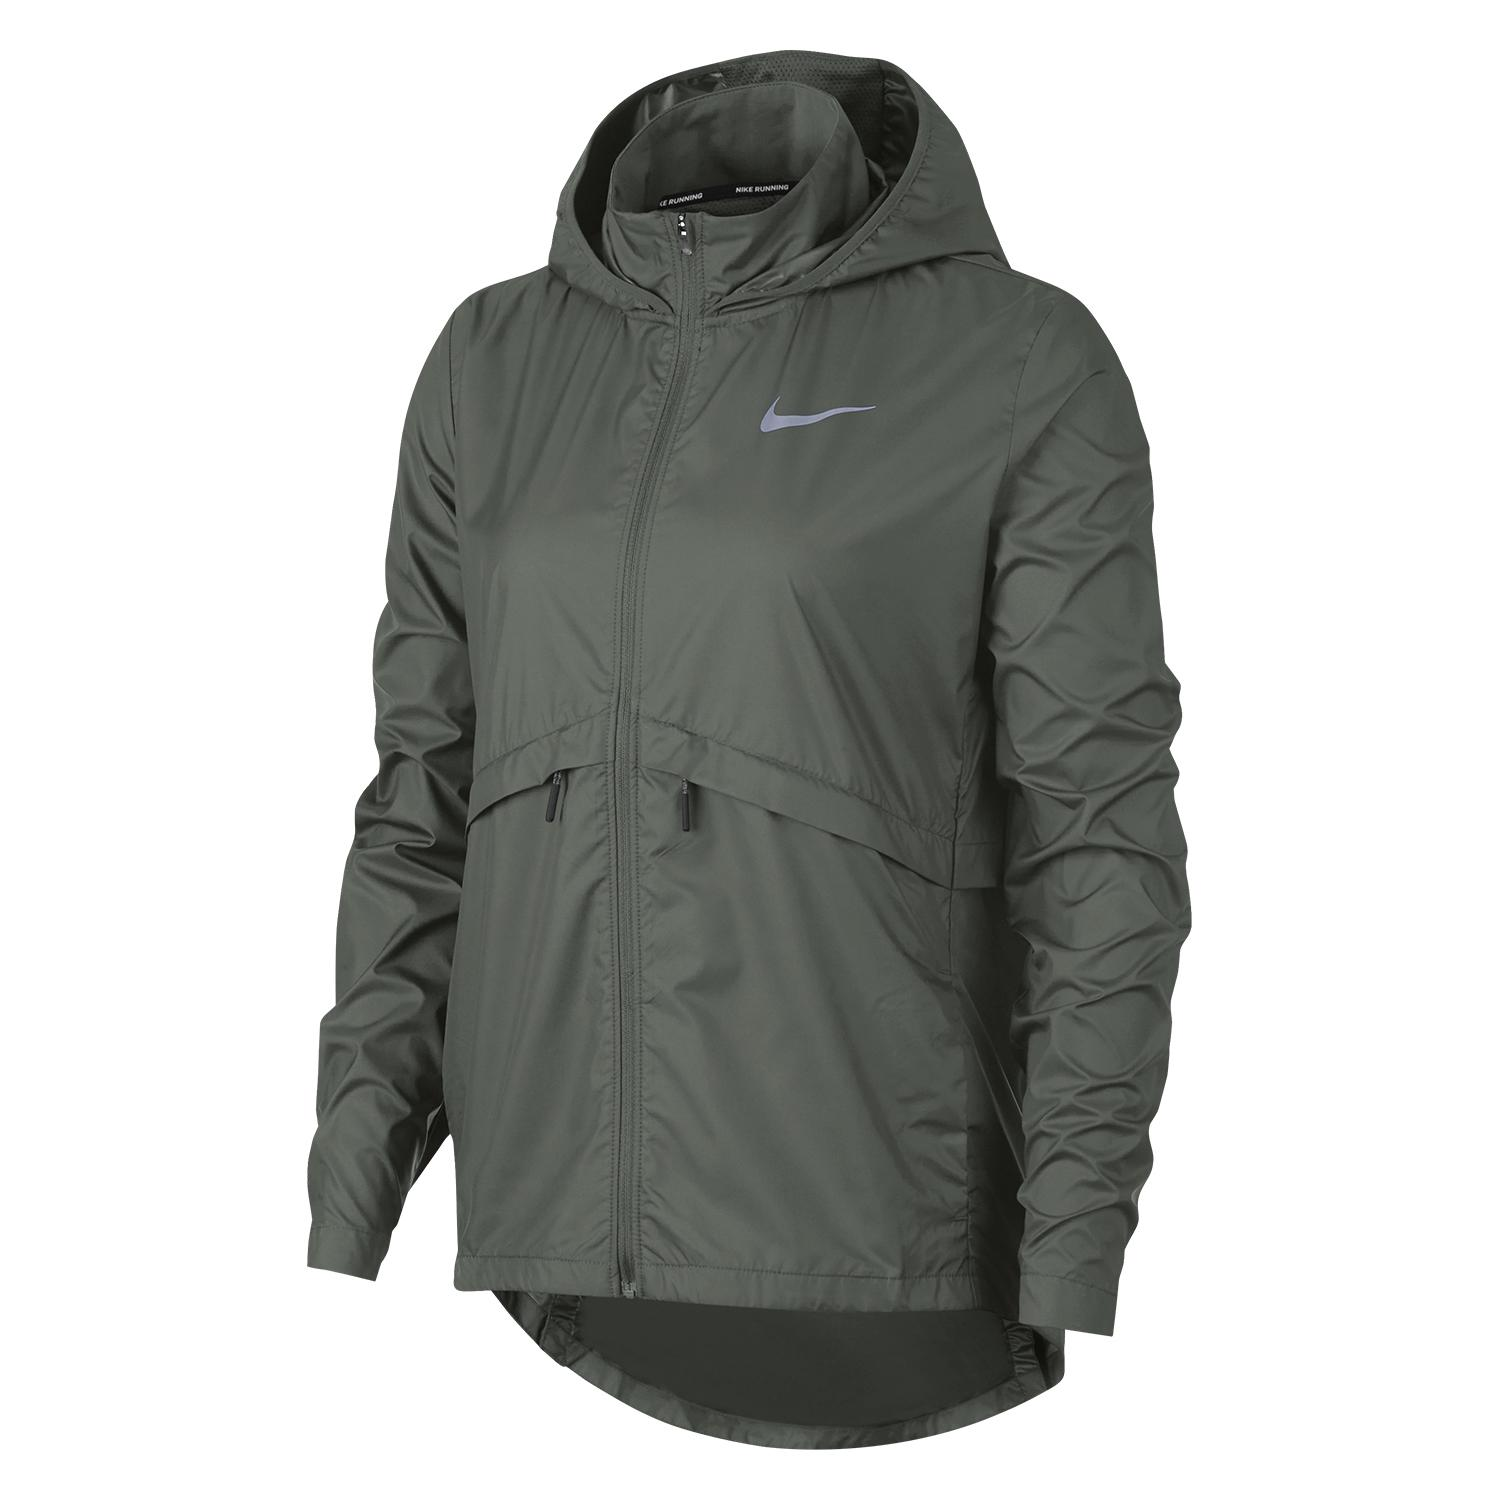 Nike Jackets for Men, Women & Kids | Best Price Guarantee at